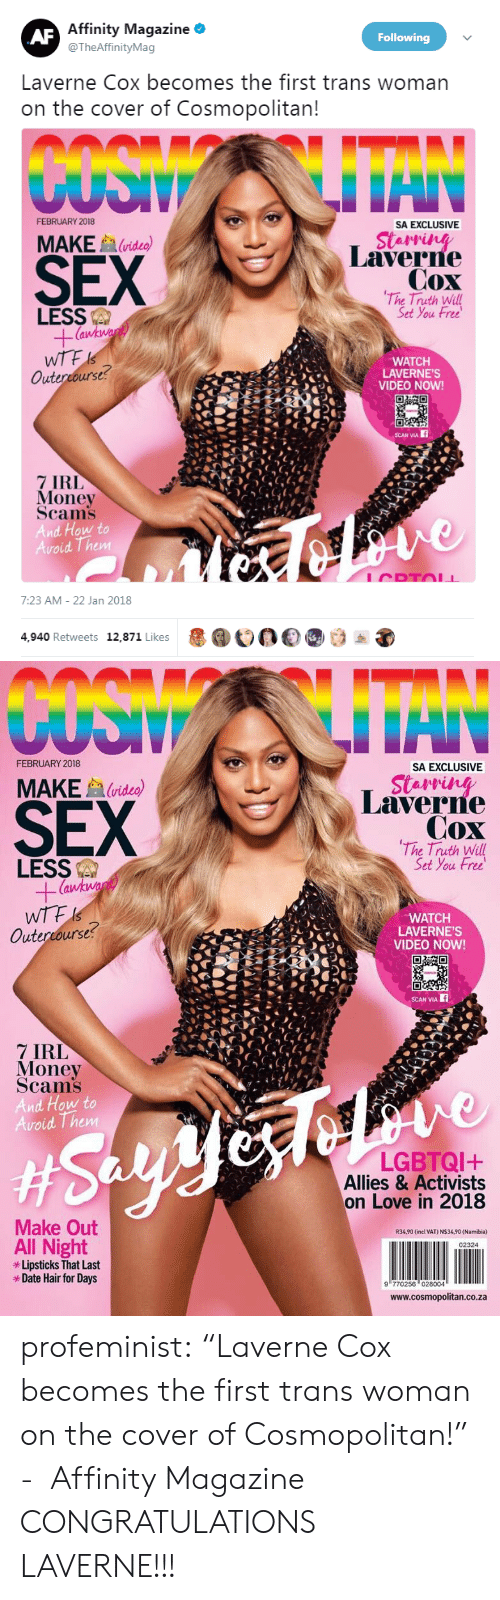 "Love, Money, and Sex: Affinity Magazine *  @TheAffinityMag  Following  Laverne Cox becomes the first trans woman  on the cover of Cosmopolitan  FEBRUARY 2018  SA EXCLUSIVE  SEX  MAKE  (video)  Laverne  Cox  The Truth Will  Set You Free  LESS  WTF  Outercourse  WATCH  LAVERNE'S  VIDEO NOW!  CEL  7 IRL  Money  Scams  And How to  Avoid Them  7:23 AM- 22 Jan 2018  4,940 Retweets 12,871 Likes  1000   FEBRUARY 2018  SA EXCLUSIVE  SEX  MAKEvideo)  Laverre  Cox  The Truth Will  Set You Free  LESS  (a  WATCH  LAVERNE'S  VIDEO NOW!  Outercourse?  SCAN VIA  7 IRL  Money  Scams  And How to  oid Them  LGBTQI+  Allies & Activists  on Love in 2018  Make Out  R34,90 (incl VAT) N$34,90 (Namibia)  All Night  Lipsticks That Last  *Date Hair for Days  02324  9 770256 028004  www.cosmopolitan.co.za profeminist:    ""Laverne Cox becomes the first trans woman on the cover of Cosmopolitan!""   -  Affinity Magazine   CONGRATULATIONS LAVERNE!!!"